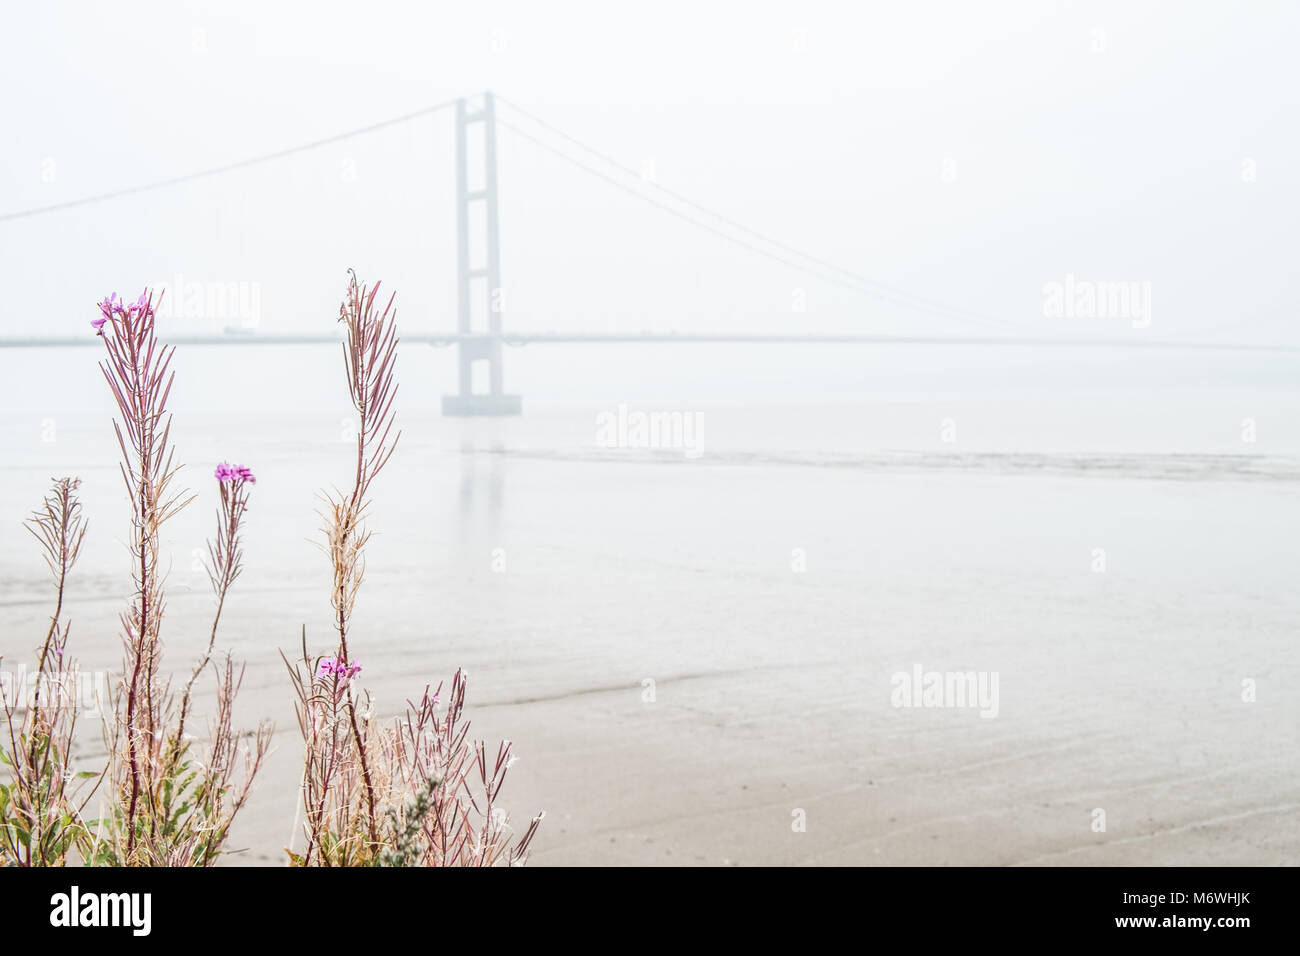 Humber bridge viewed from the south bank of the river at Barton upon Humber across flowering plants along shore, - Stock Image